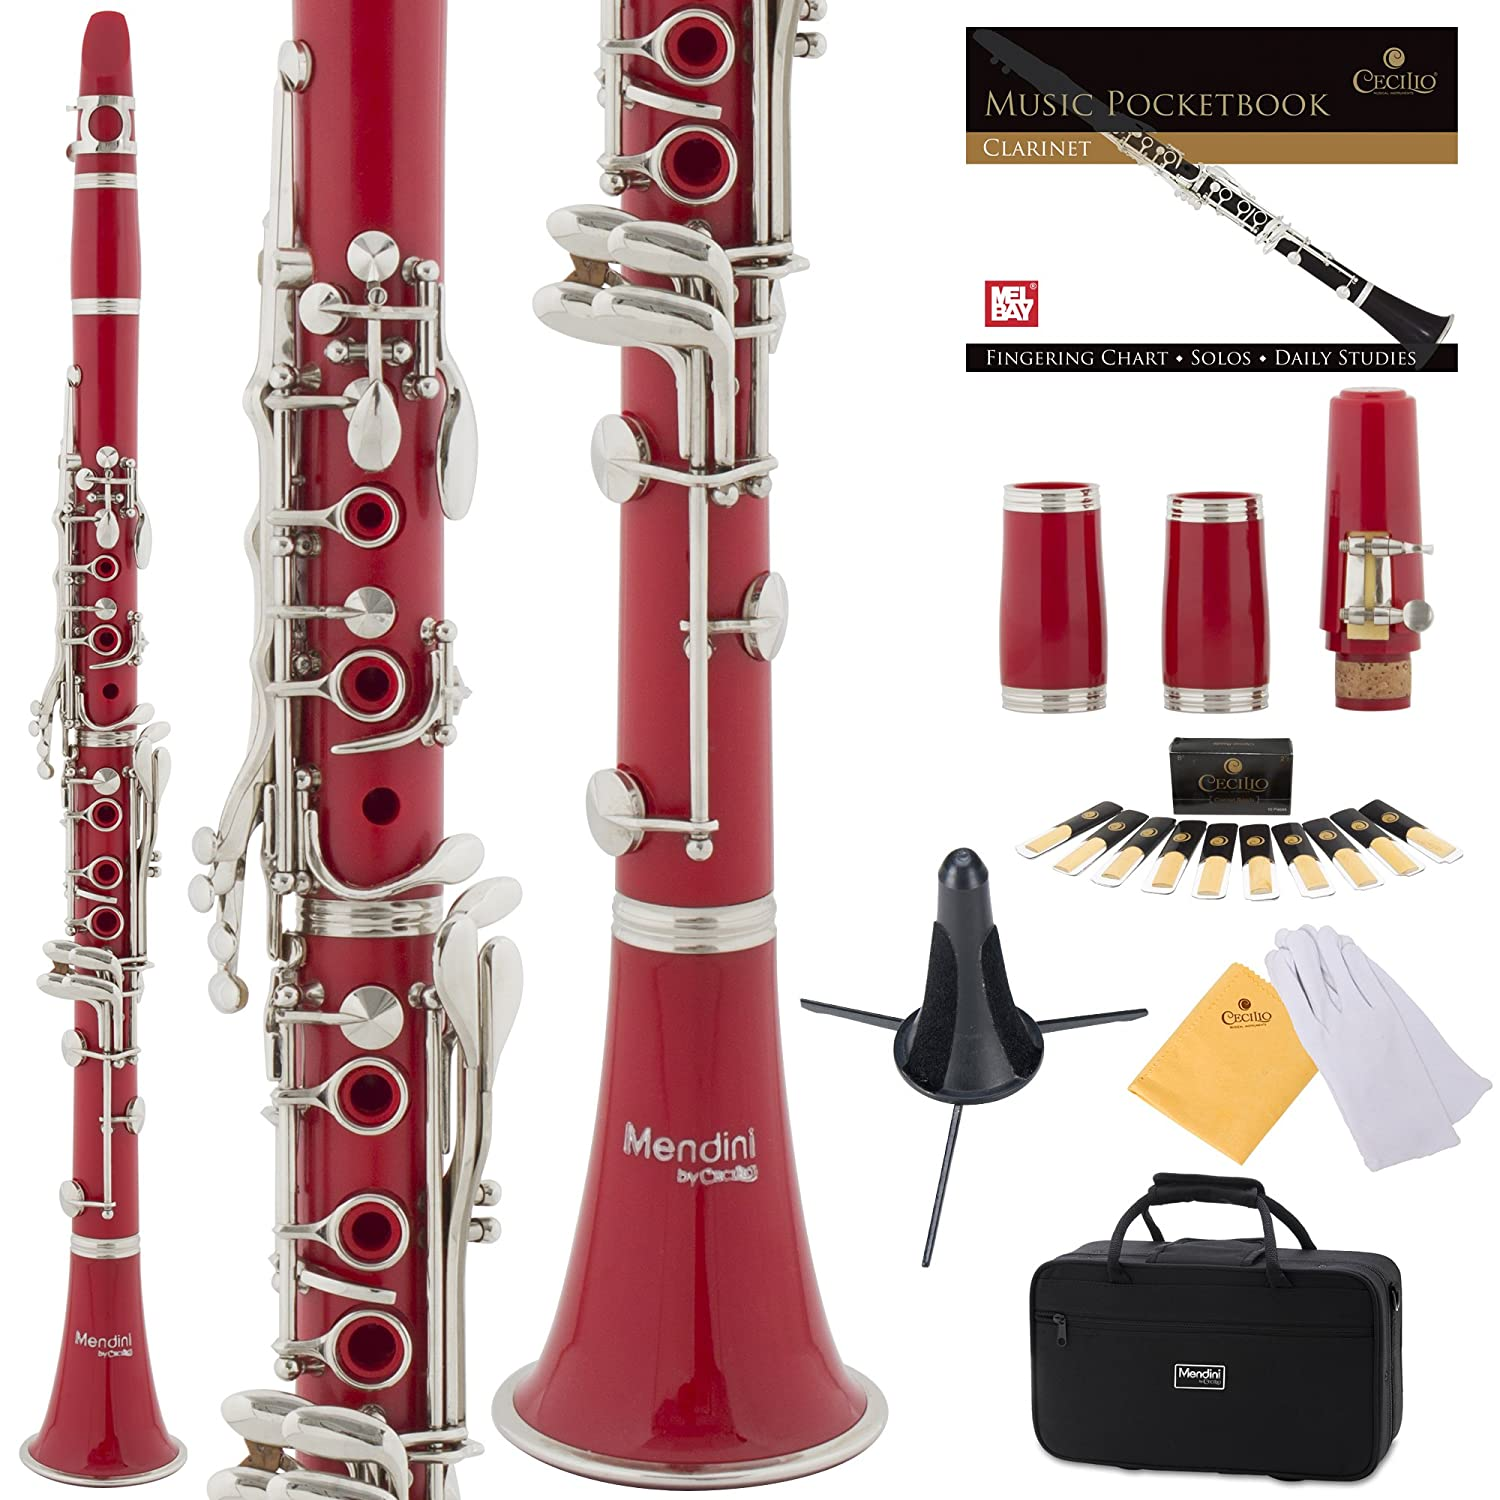 Mendini by Cecilio B Flat Clarinet with 2 Barrels, Case, Stand, Book, 10 Reeds, Mouthpiece and Warranty-Black Ebonite MCT-JE2+SD+PB Cecilio Musical Instruments